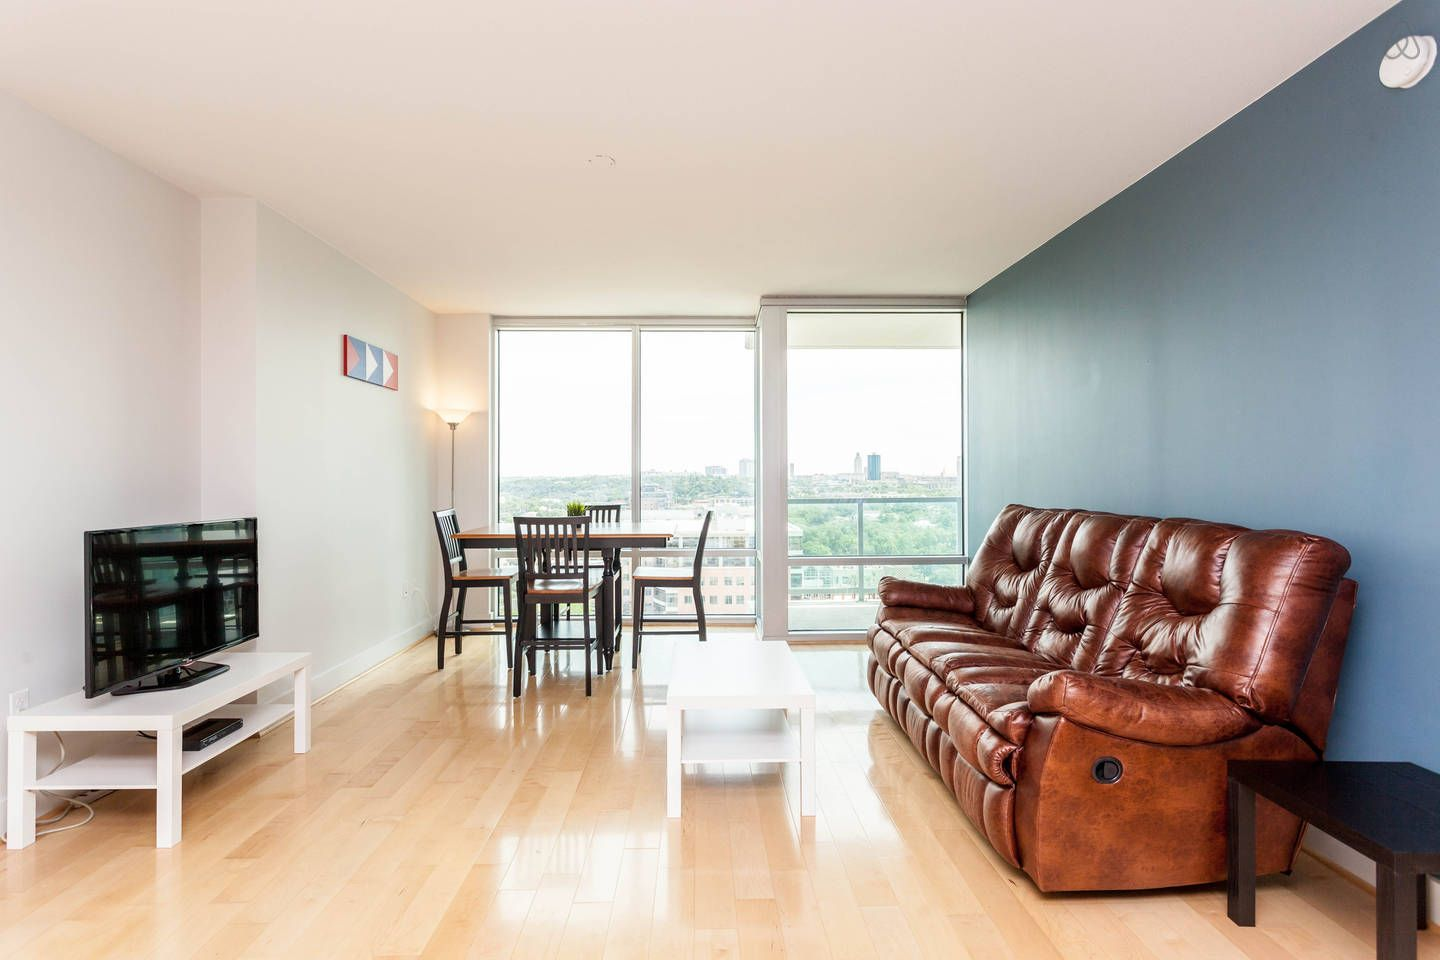 DT HighRise Amazing Location w/view - vacation rental in Austin, Texas. View more: #AustinTexasVacationRentals